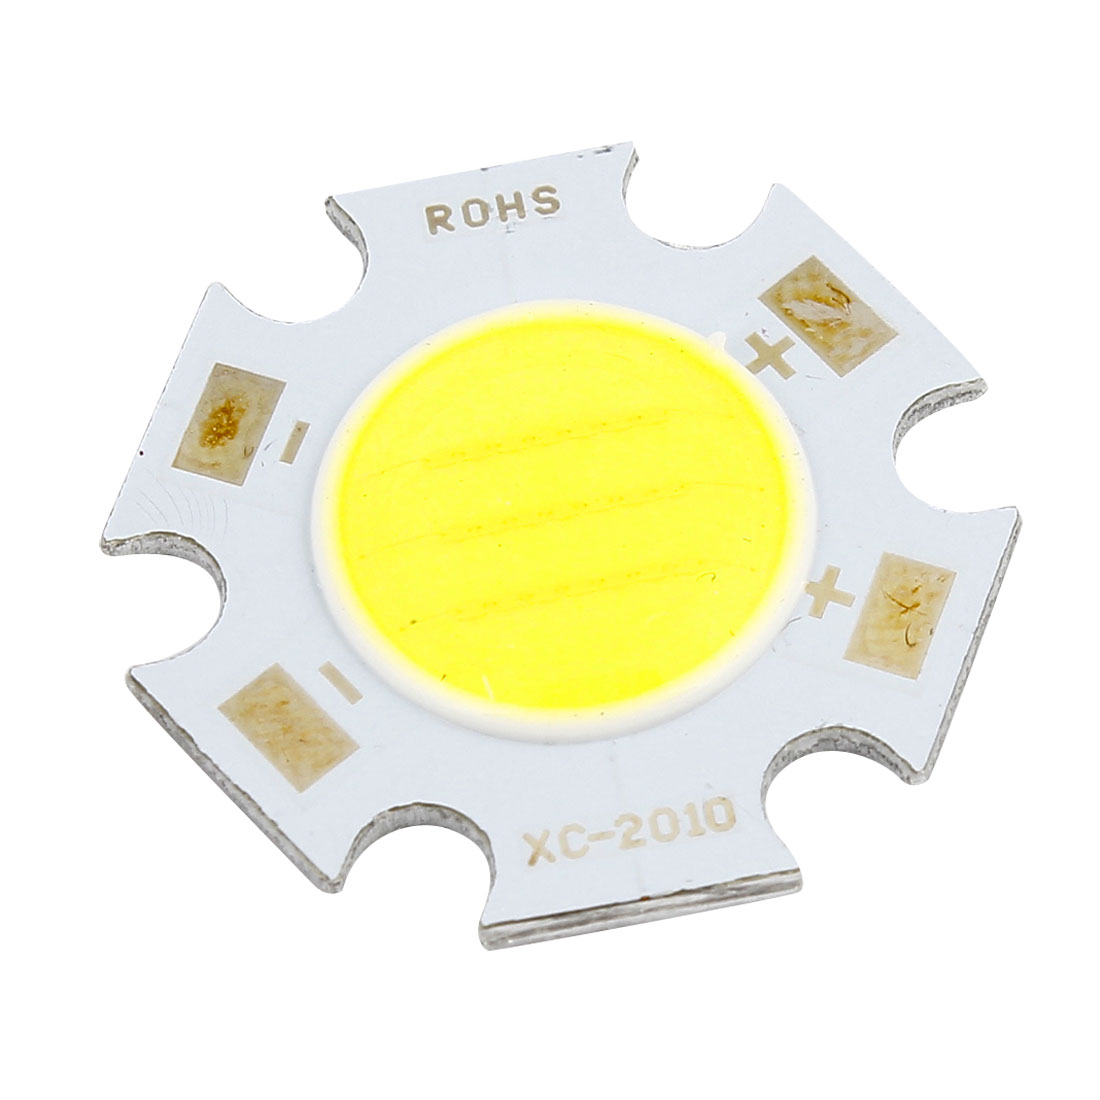 20-22V 7W Pure White Light High Power SMD COB LED Lamp Chip Bulb Emitter